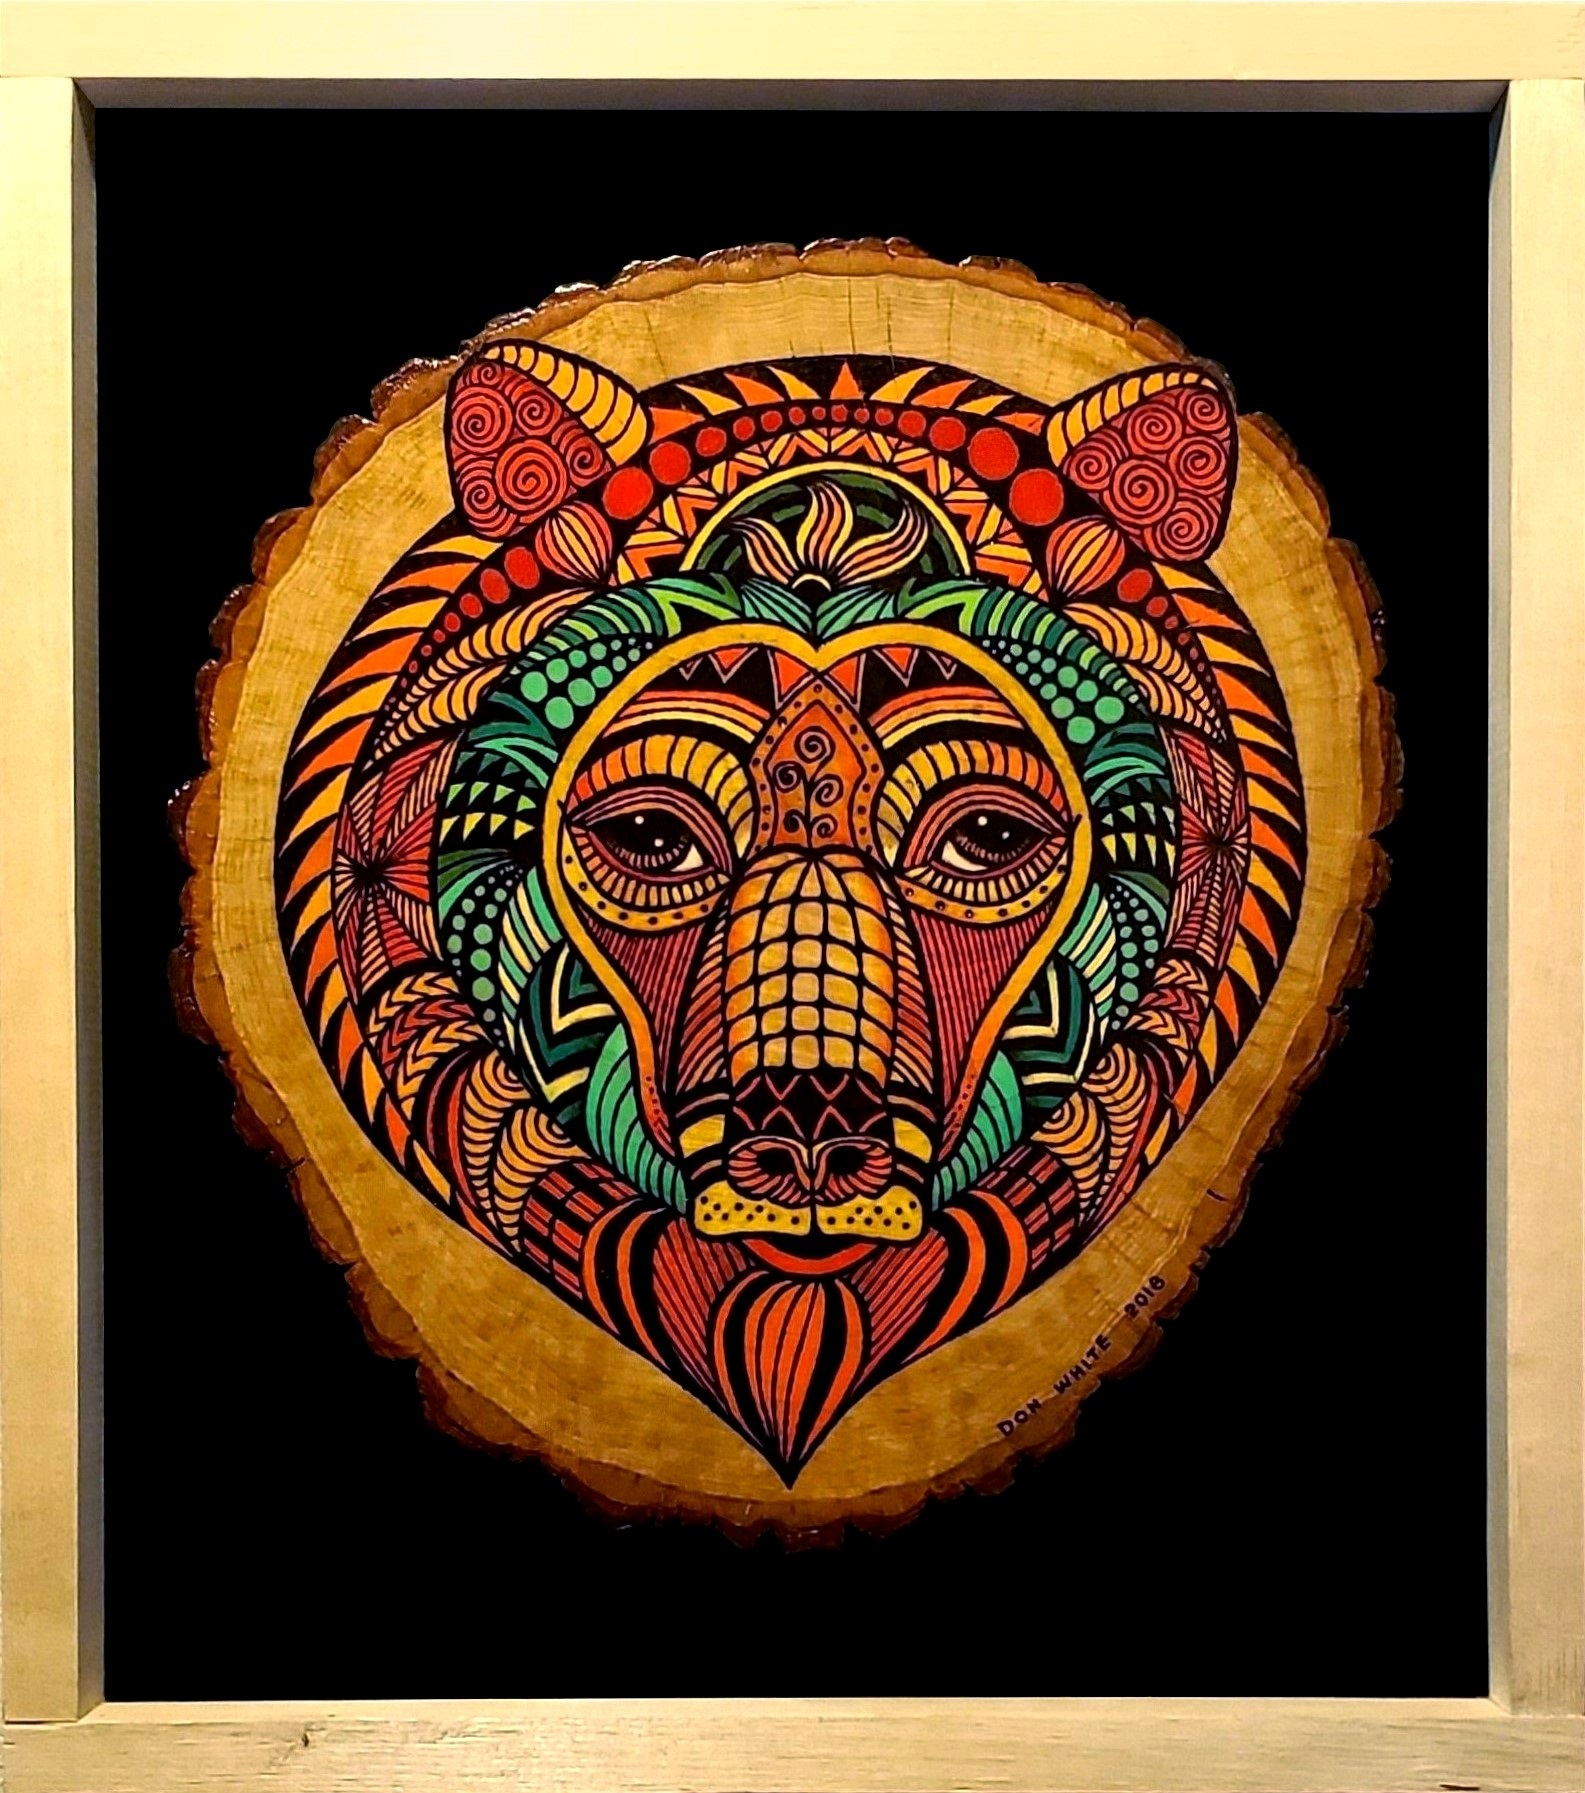 Don White's pyrographic image of a primitive bear image